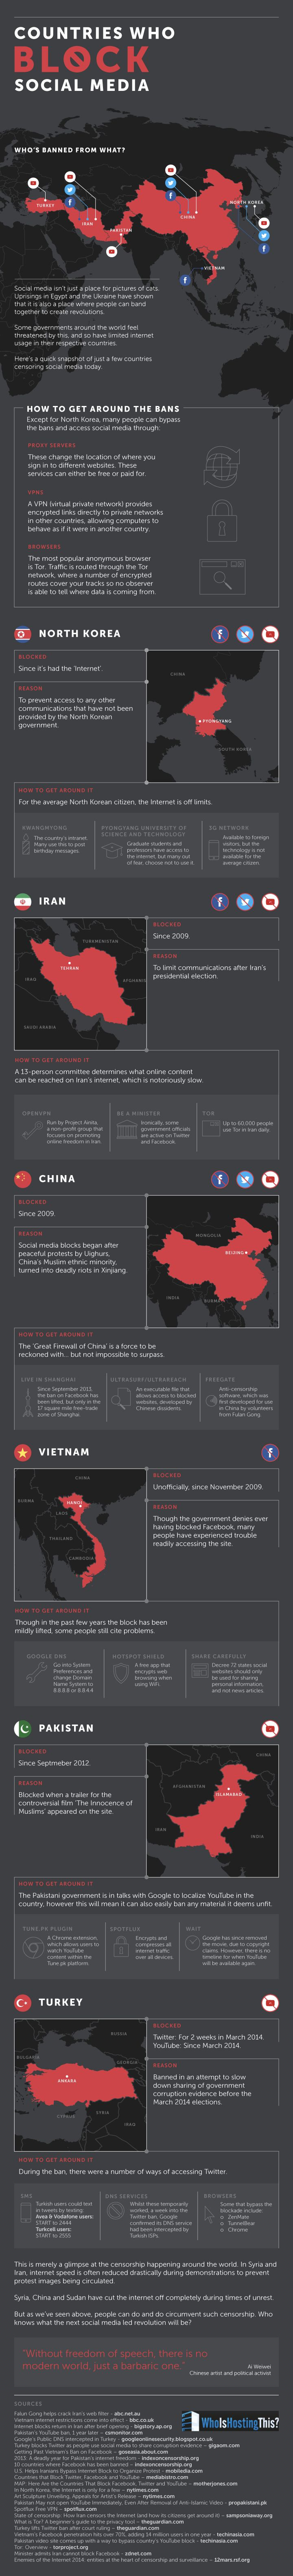 North Korea, Iran, China, Pakistan, Turkey - Countries Who Block Social Media [INFOGRAPHIC] Check this out guys. These are countries who banned social media that distribution from America #DDWSU